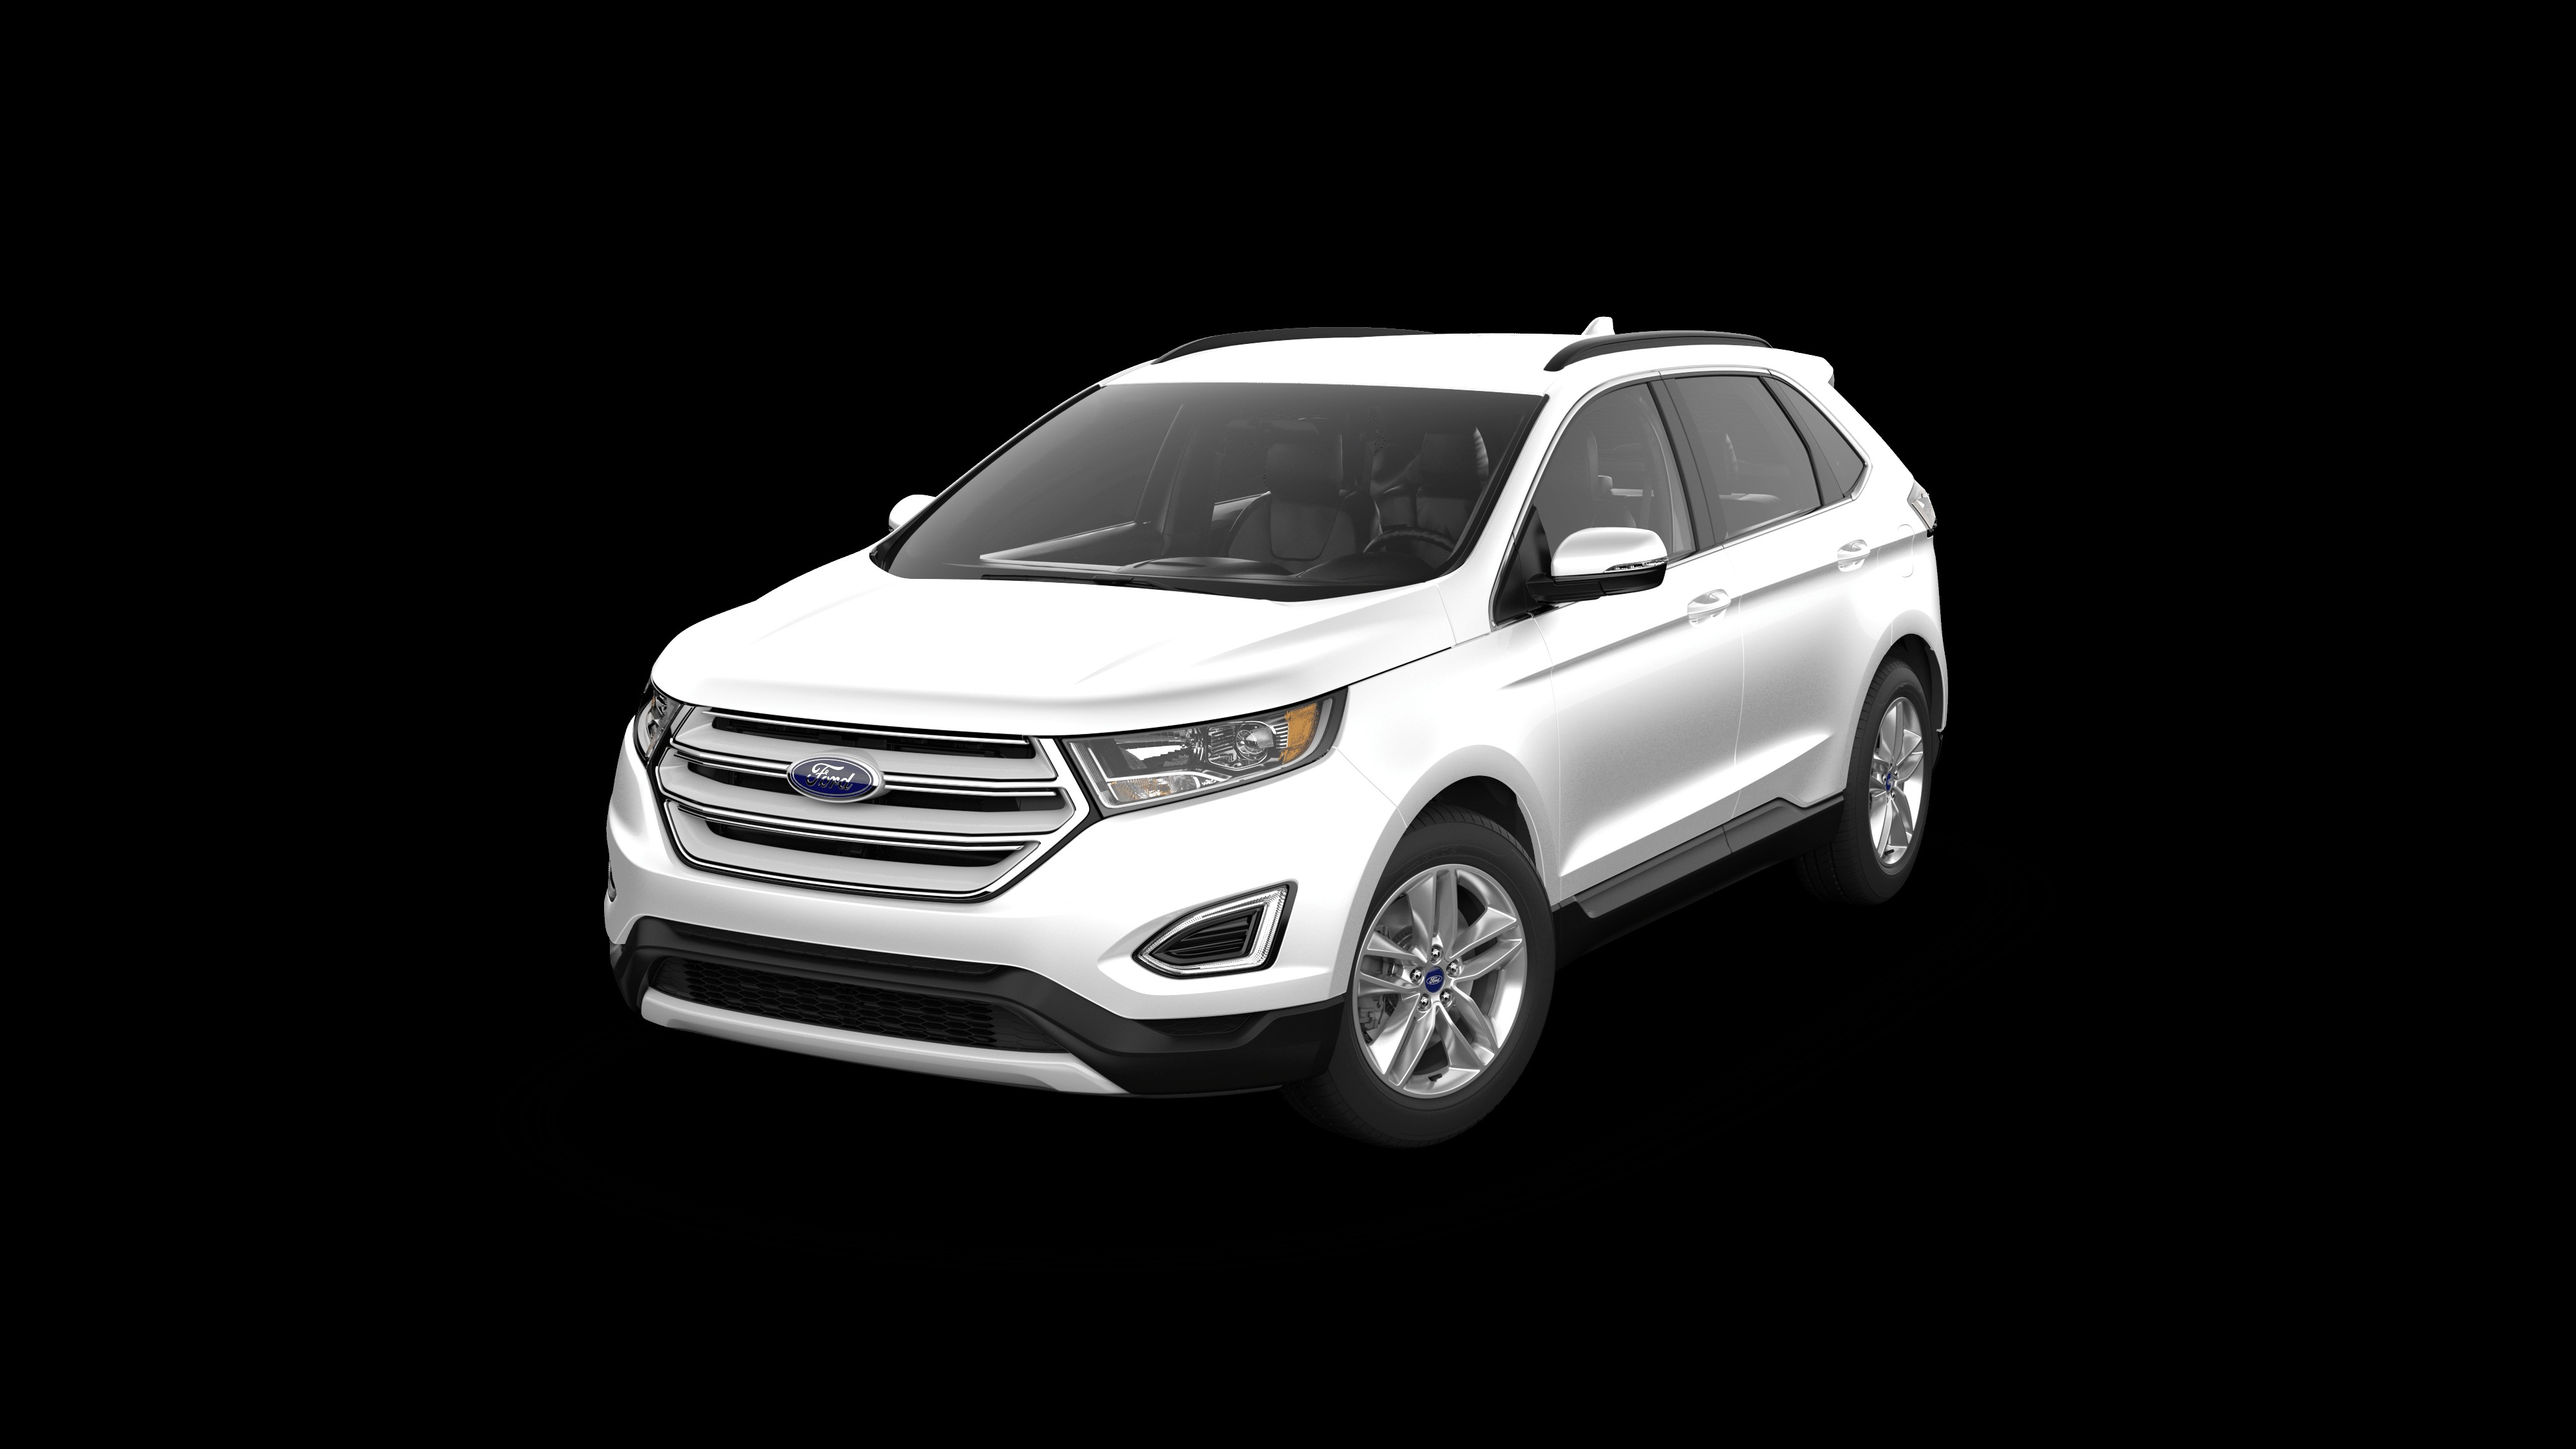 2007 ford Edge Engine Diagram 2018 ford Edge for Sale In Louisville 2fmpk3j83jbb byerly ford Of 2007 ford Edge Engine Diagram